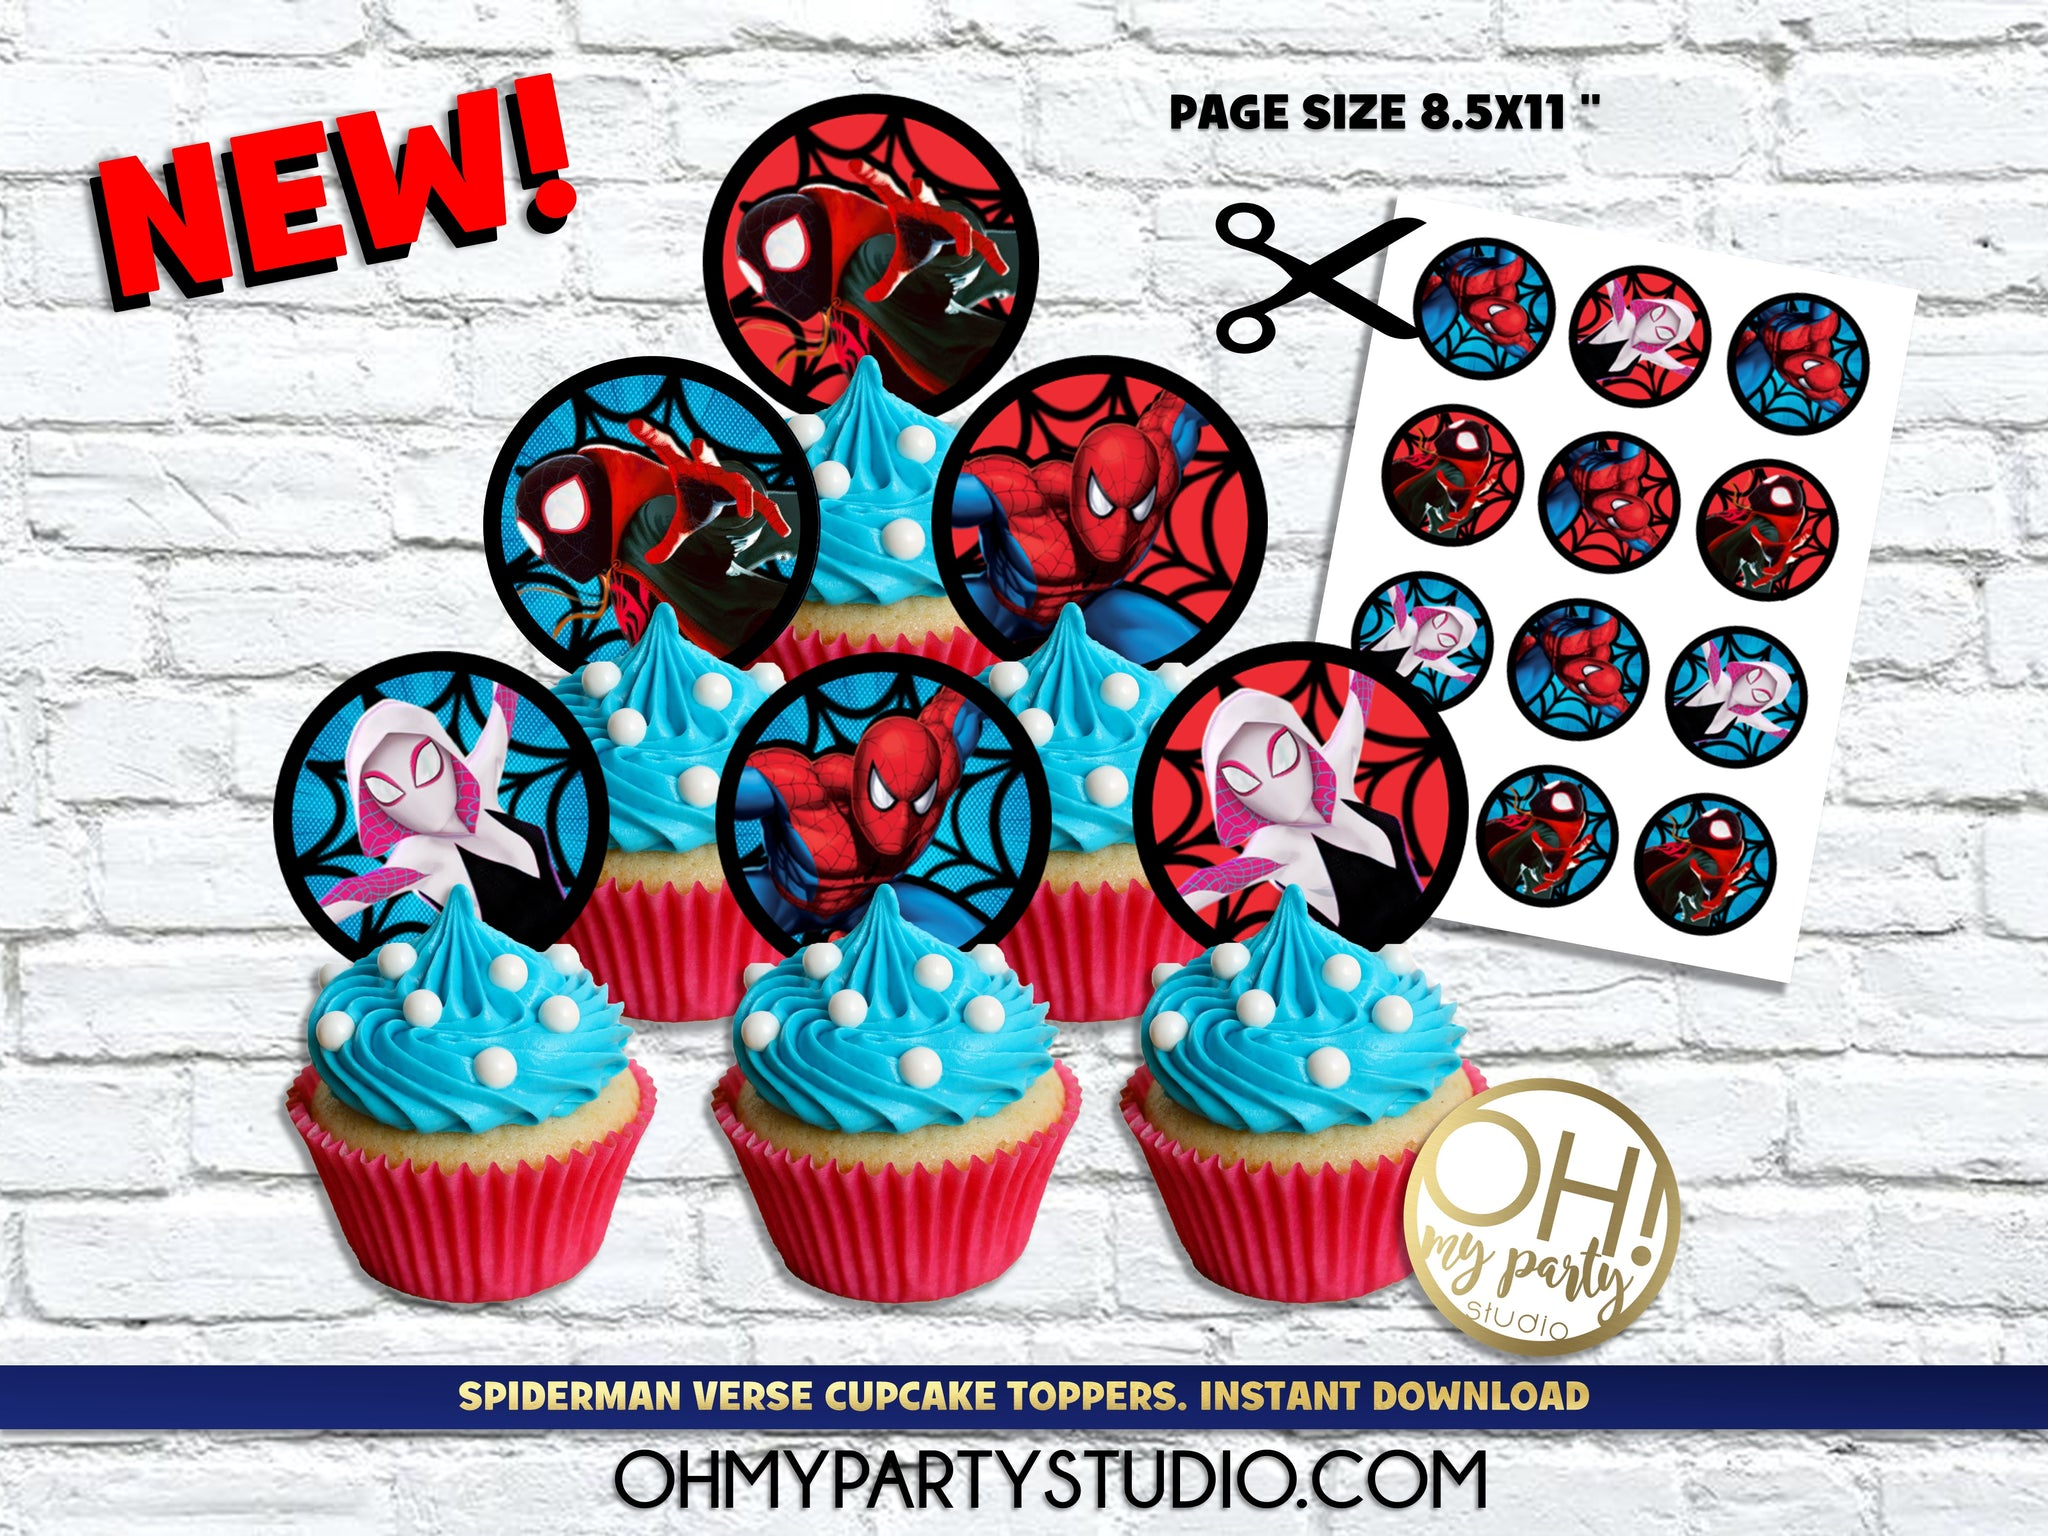 INTO THE SPIDER VERSE PARTY, INTO THE SPIDER VERSE  BIRTHDAY, INTO THE SPIDER VERSE PARTY SUPPLIES, INTO THE SPIDER VERSE RINTABLES, INTO THE SPIDER VERSE DECORATIONS, INTO THE SPIDER VERSE PARTY IDEAS, INTO THE SPIDER VERSE DECORATION, INTO THE SPIDER VERSE BIRTHDAY PARTY, MILES MORALES PARTY, MILES MORALES BIRTHDAY,MILES MORALES INVITATION, MILES MORALES INVITATIONS, MILES MORALES BIRTHDAY INVITATION, SPIDER VERSE INVITATION, SPIDER VERSE INVITATIONS